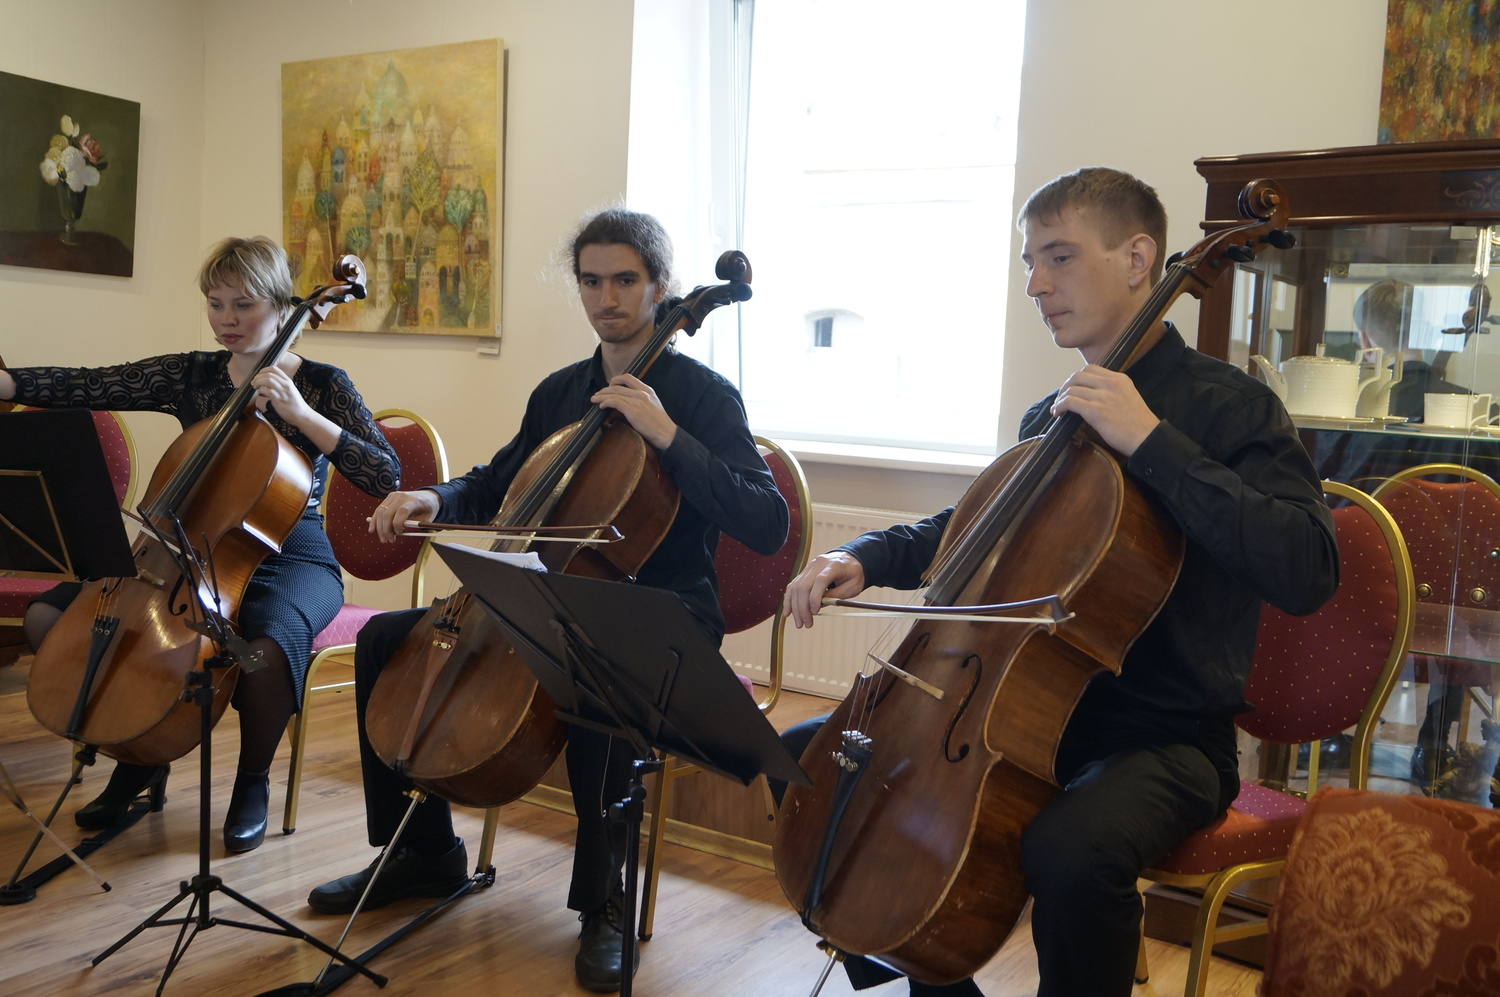 The Cello Quartet